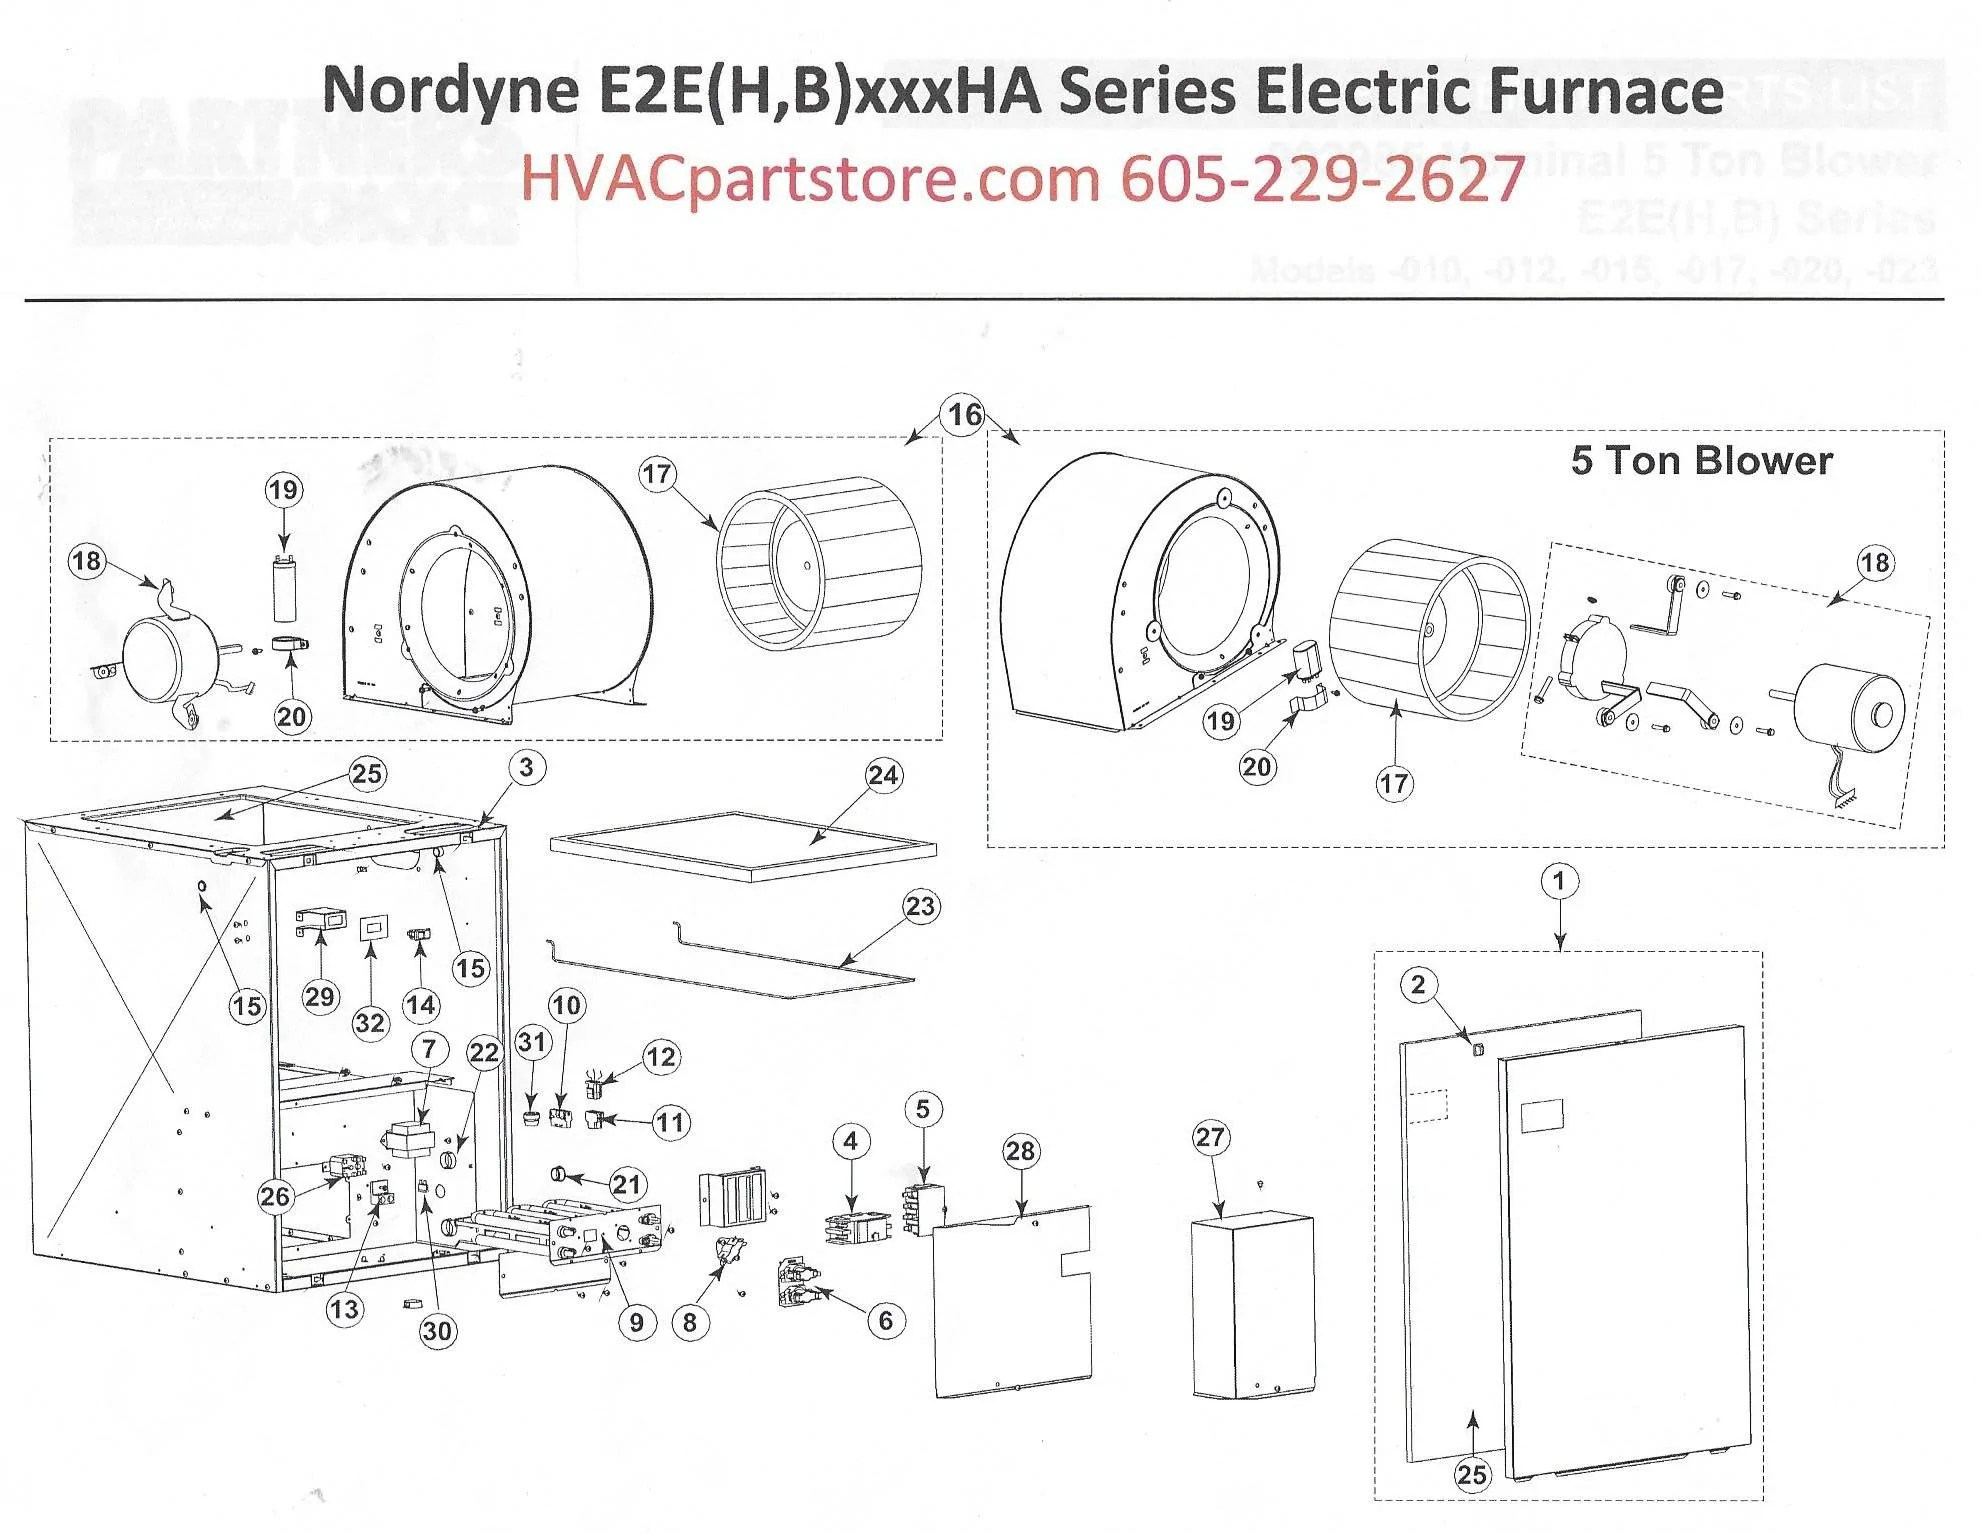 E2EB017HB Nordyne Electric Furnace Parts – HVACpartstore